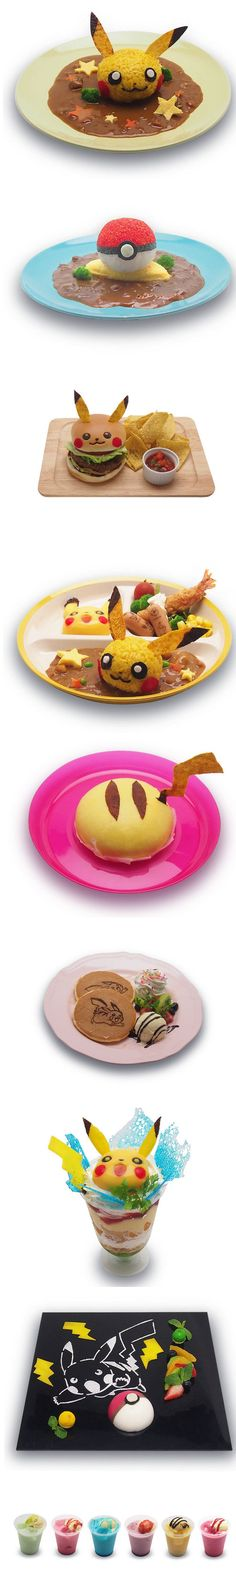 Playing with your food